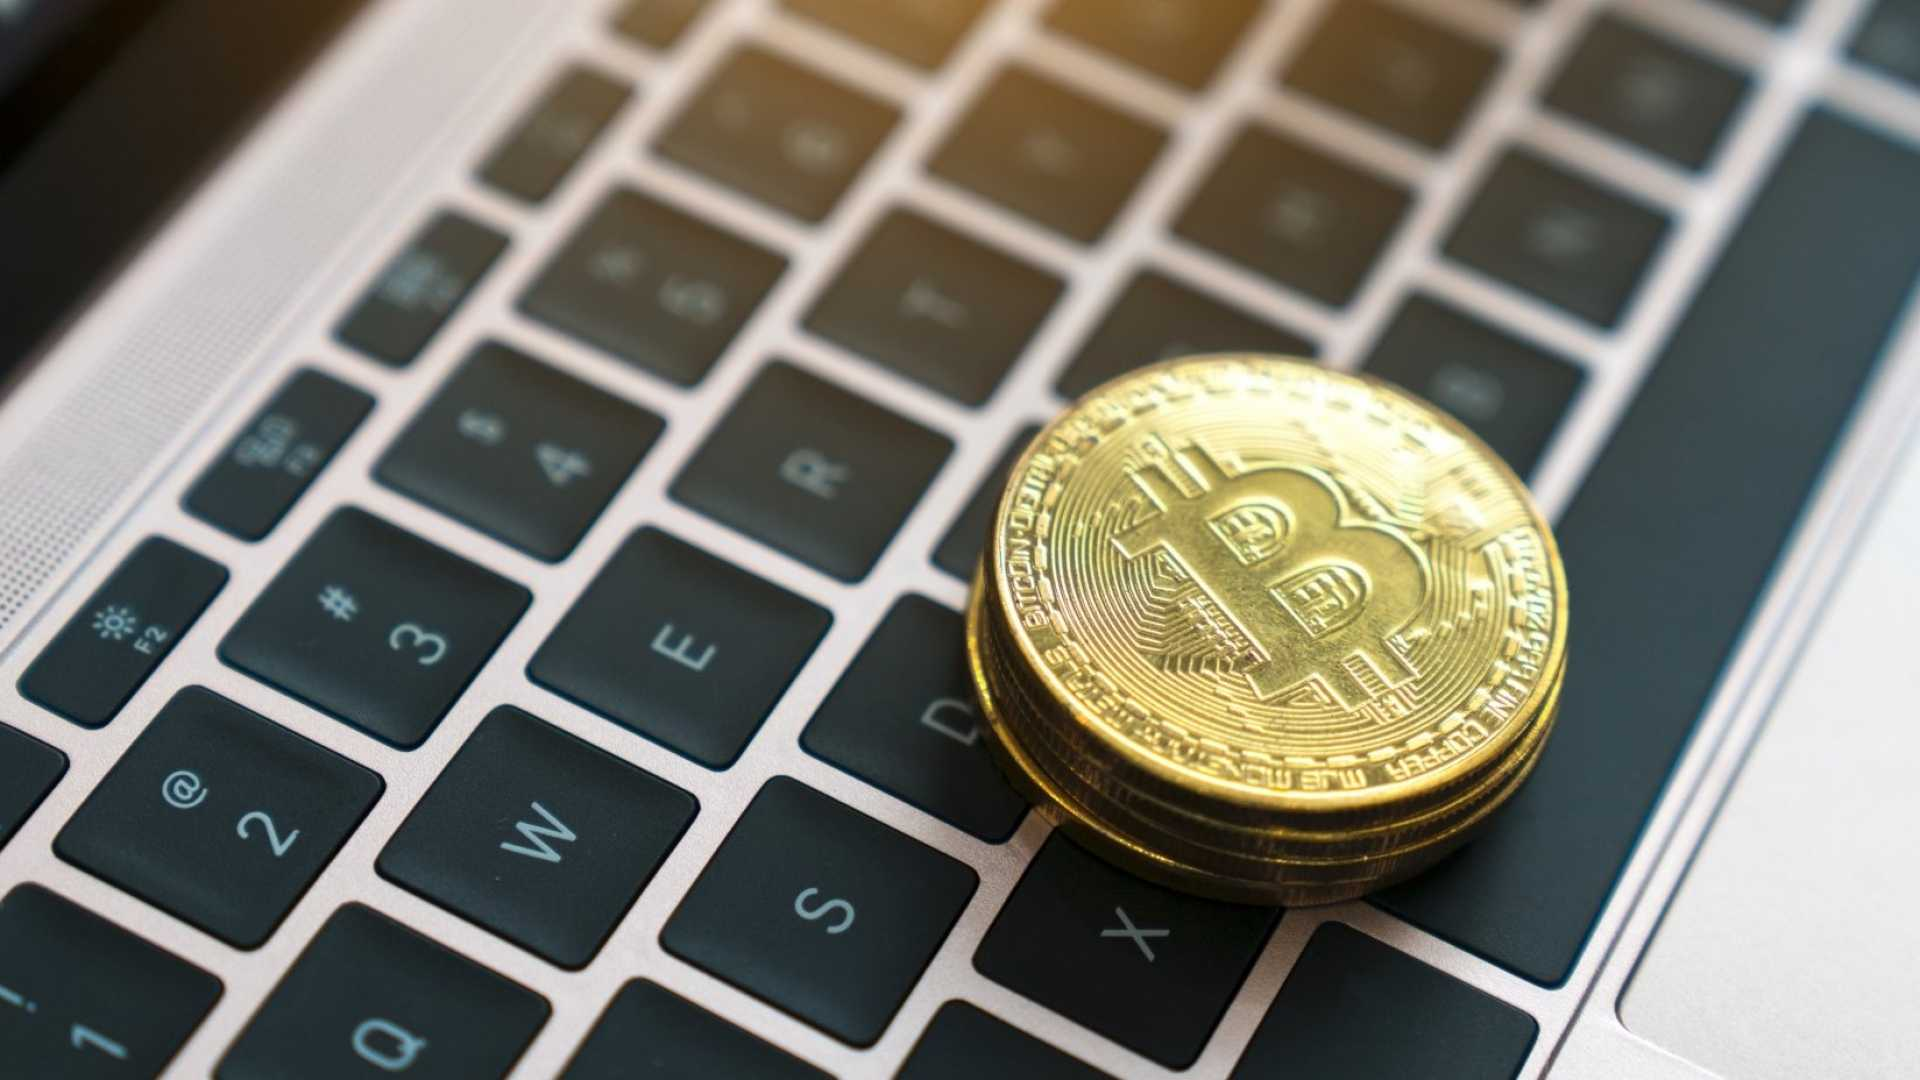 Still Wondering If Bitcoin Is a Good Investment? Read This First